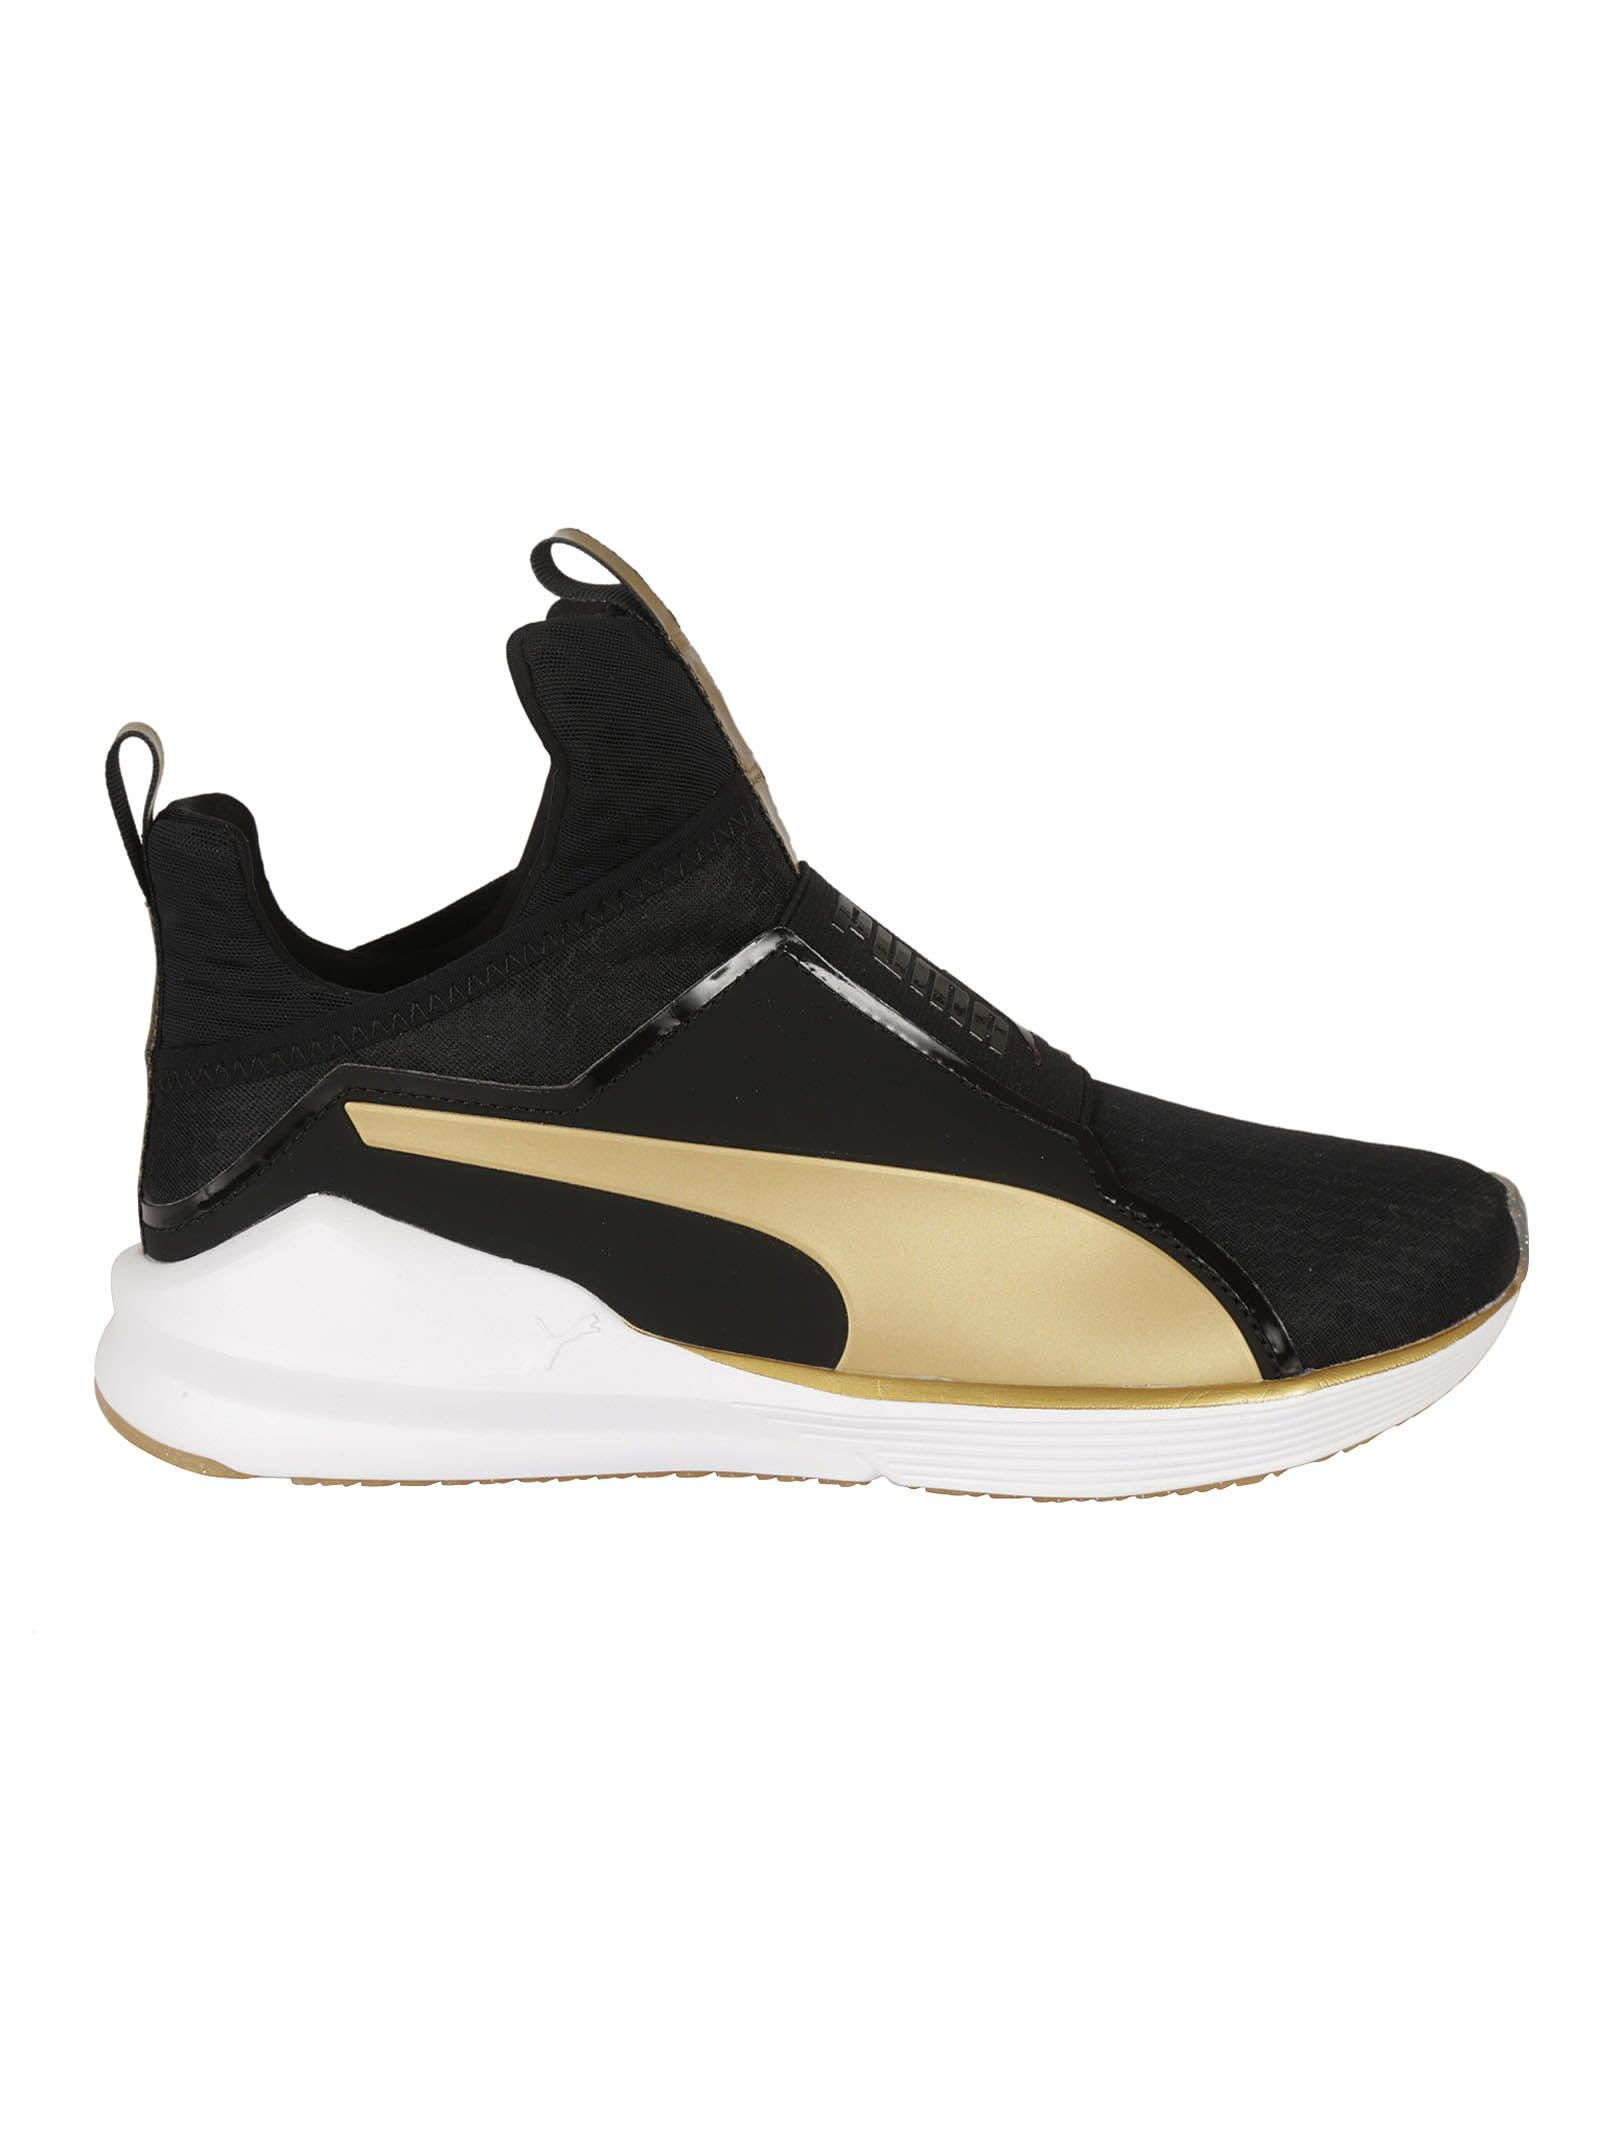 revendeur ea3ab a4cfb PUMA BLACK AND GOLD FIERCE SNEAKERS. #puma #shoes # | Puma ...